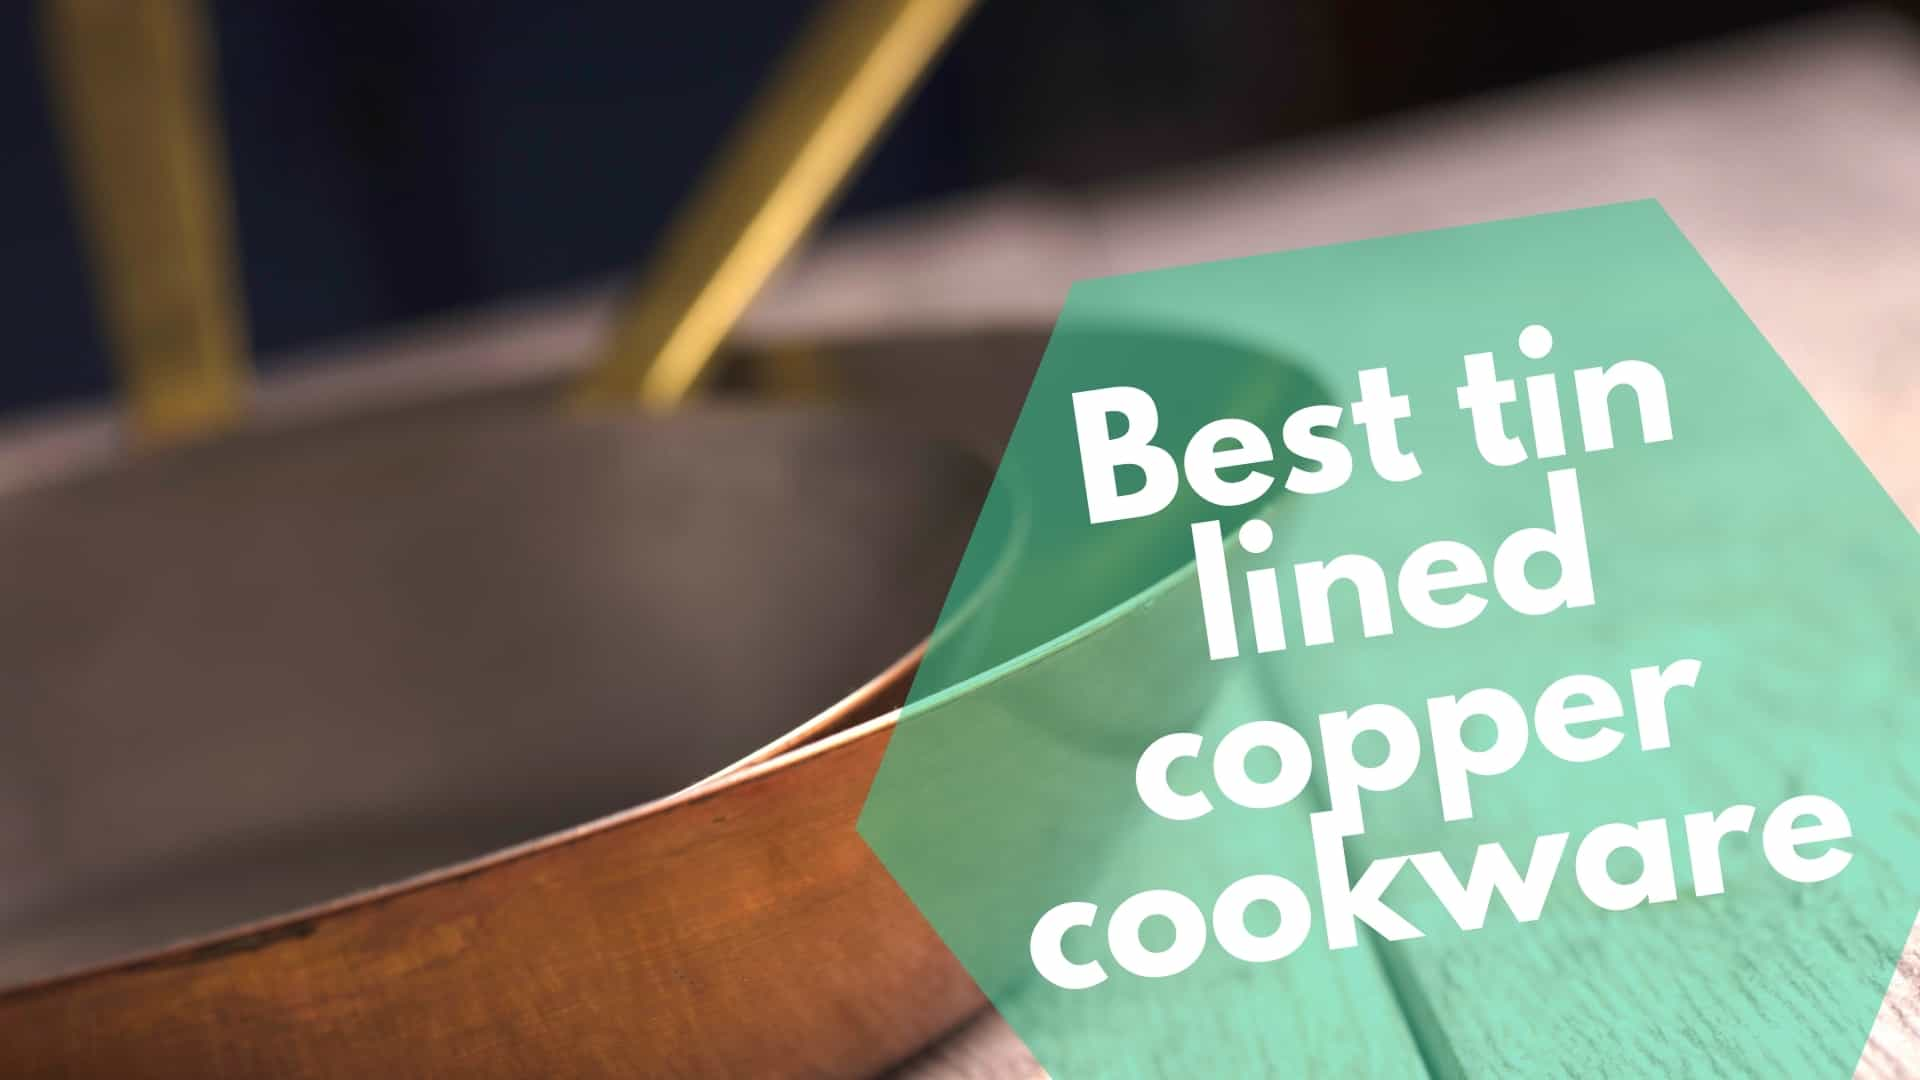 Best tin lined copper cookware